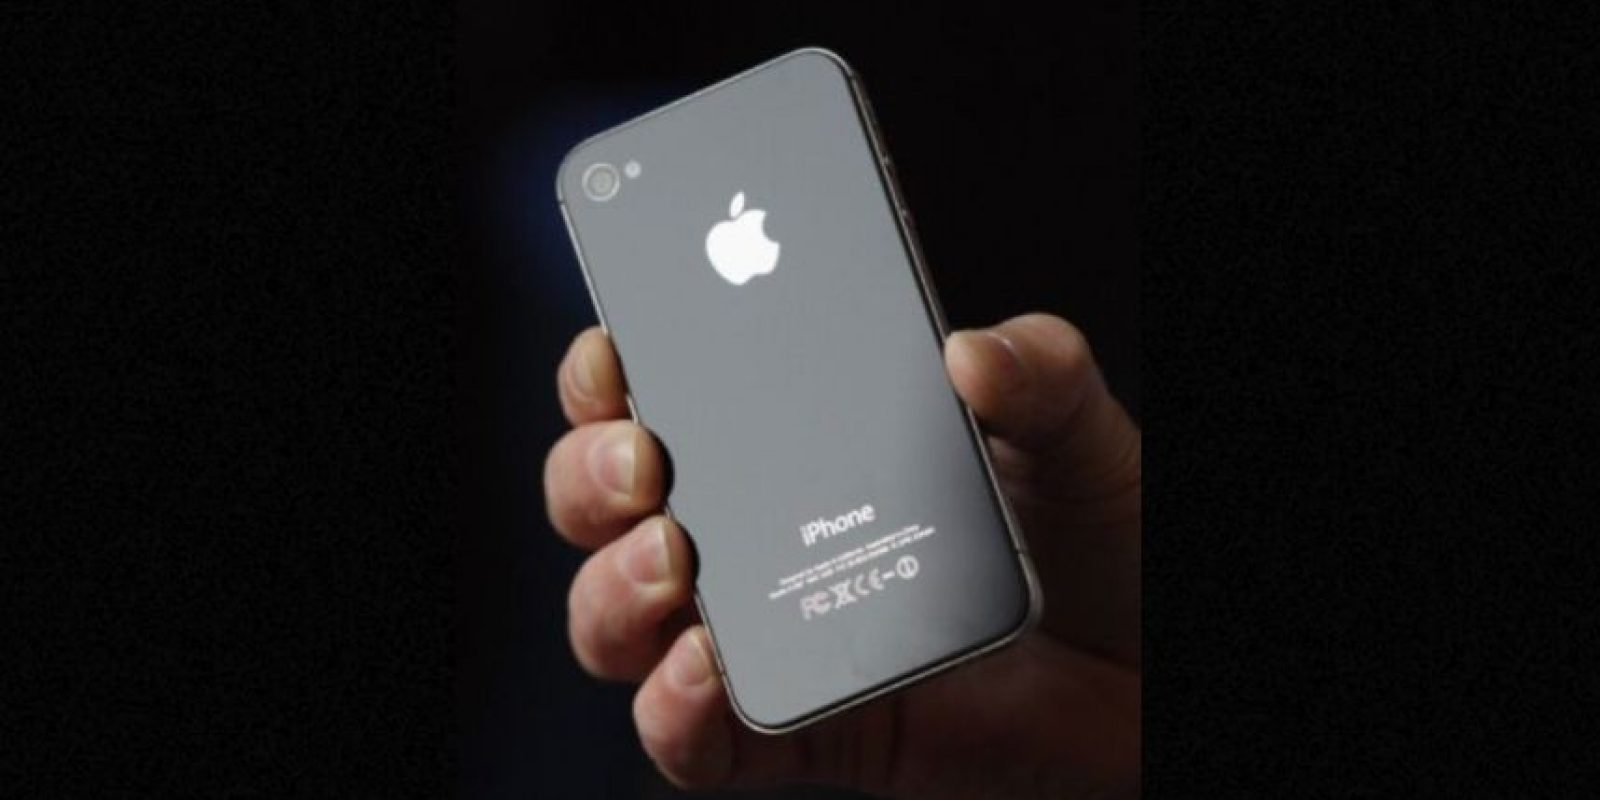 iPhone 4s (2011). Foto: Getty Images